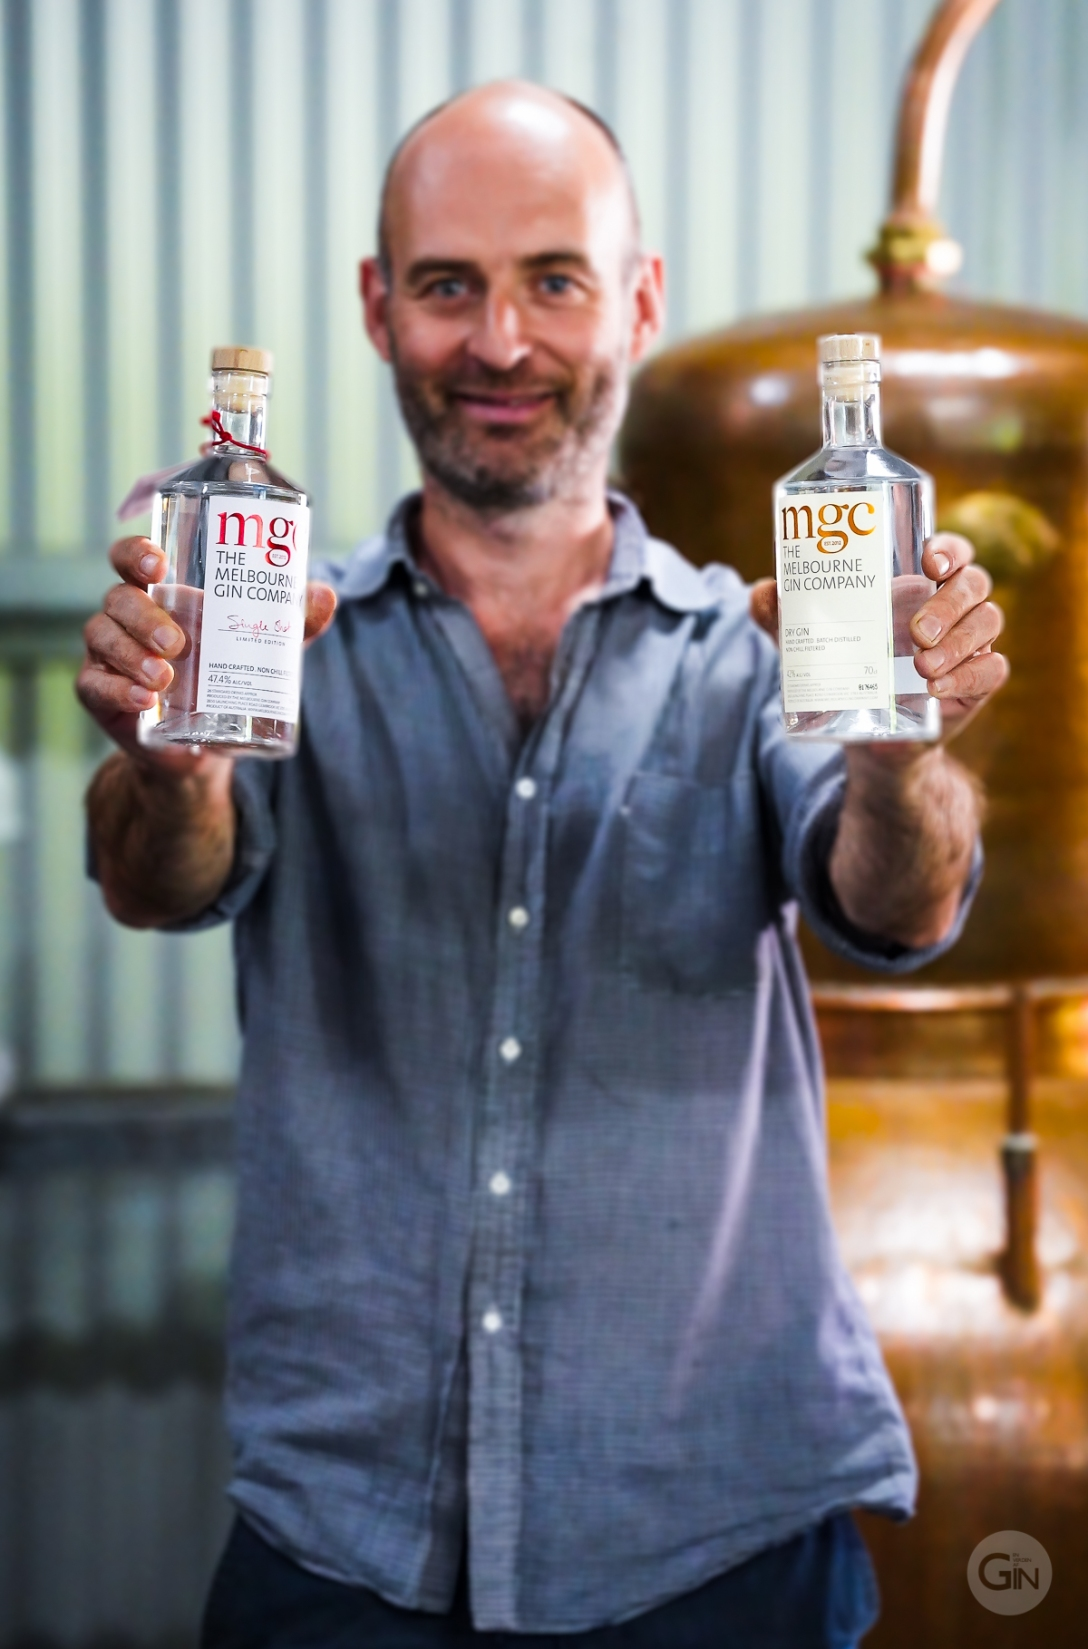 Andrew Marks med The Melbourne Gin Company Dry Gin og The Melbourne Gin Company Single Shot Gin. Photo by Michael Sperling.